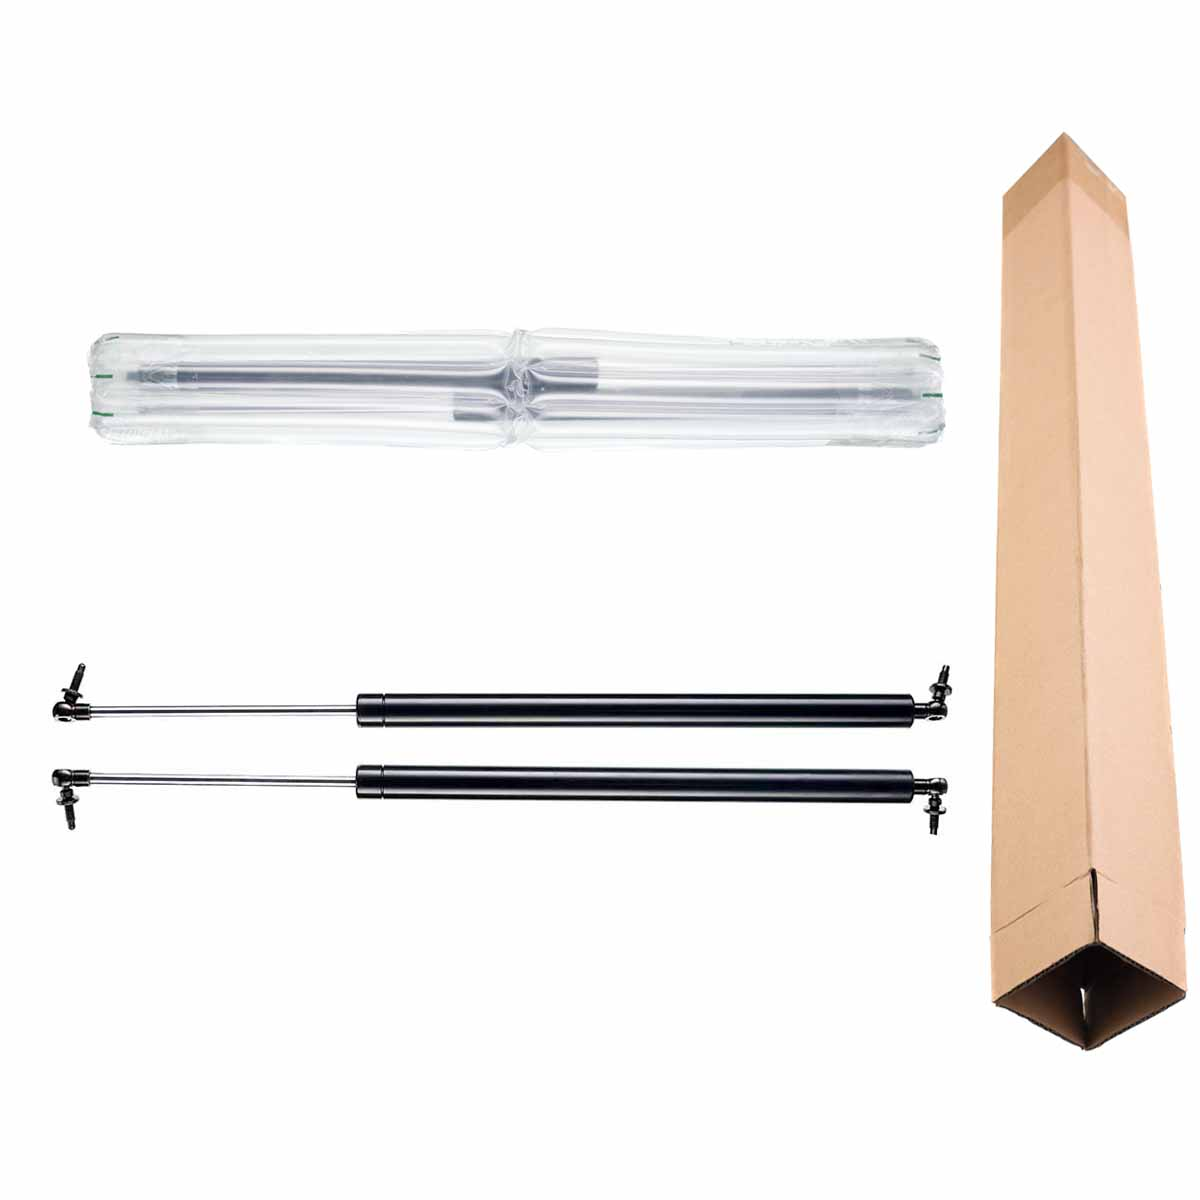 2x Tailgate Hatch Lift Supports Struts for Chrysler Grand Caravan Town /& Country